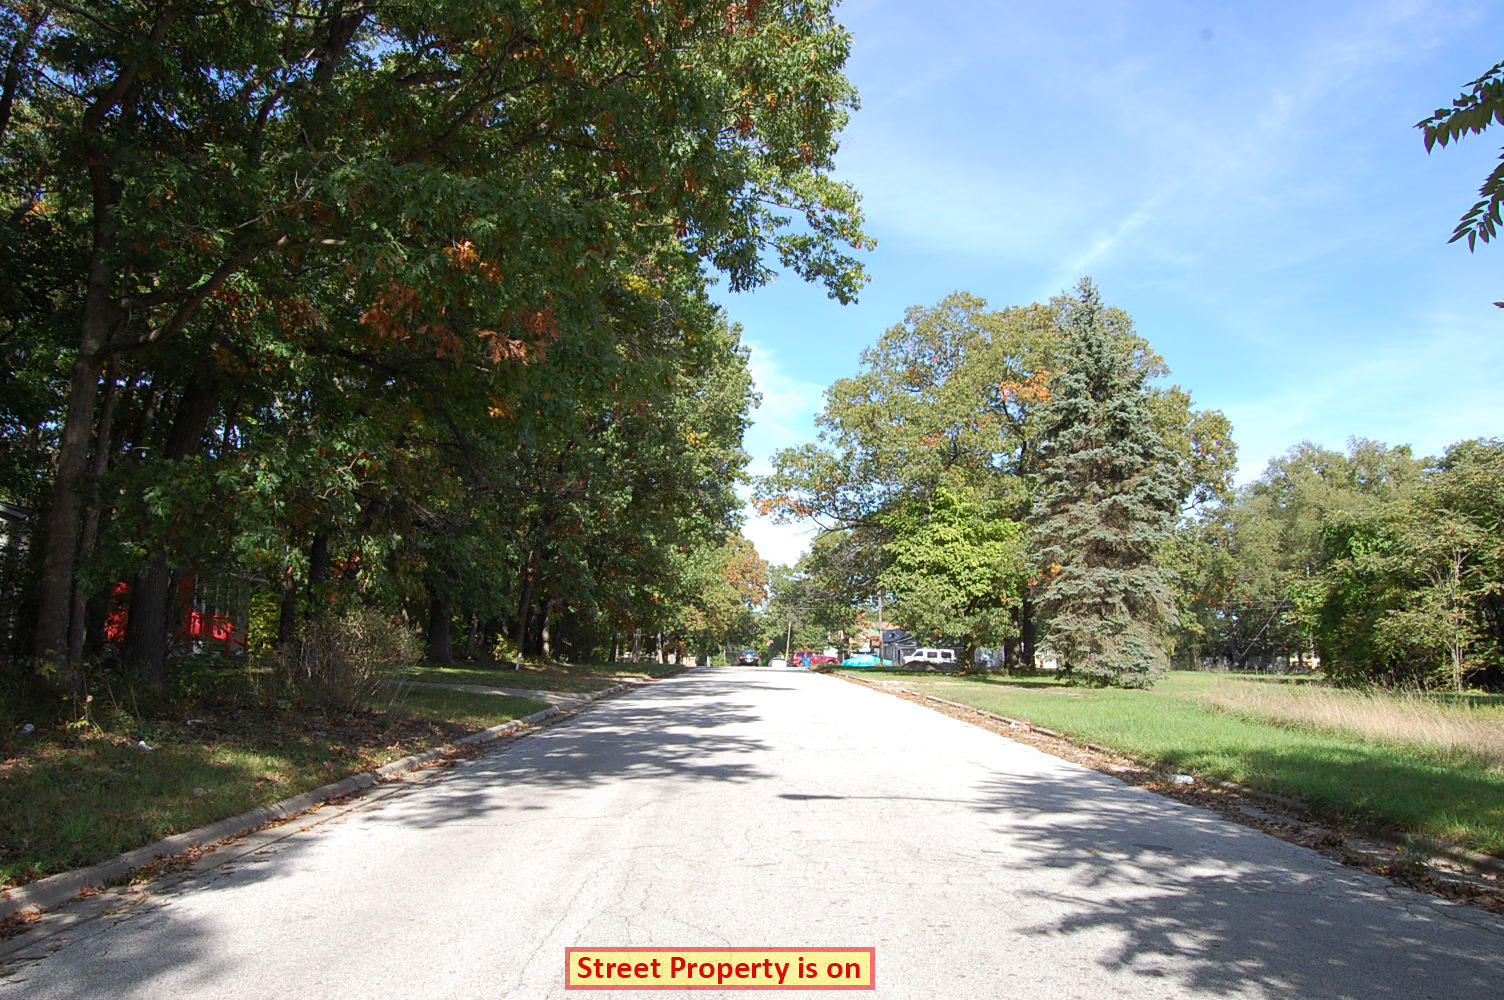 Invest in Your Dream Business With This Michigan Commercial Parcel - Image 7